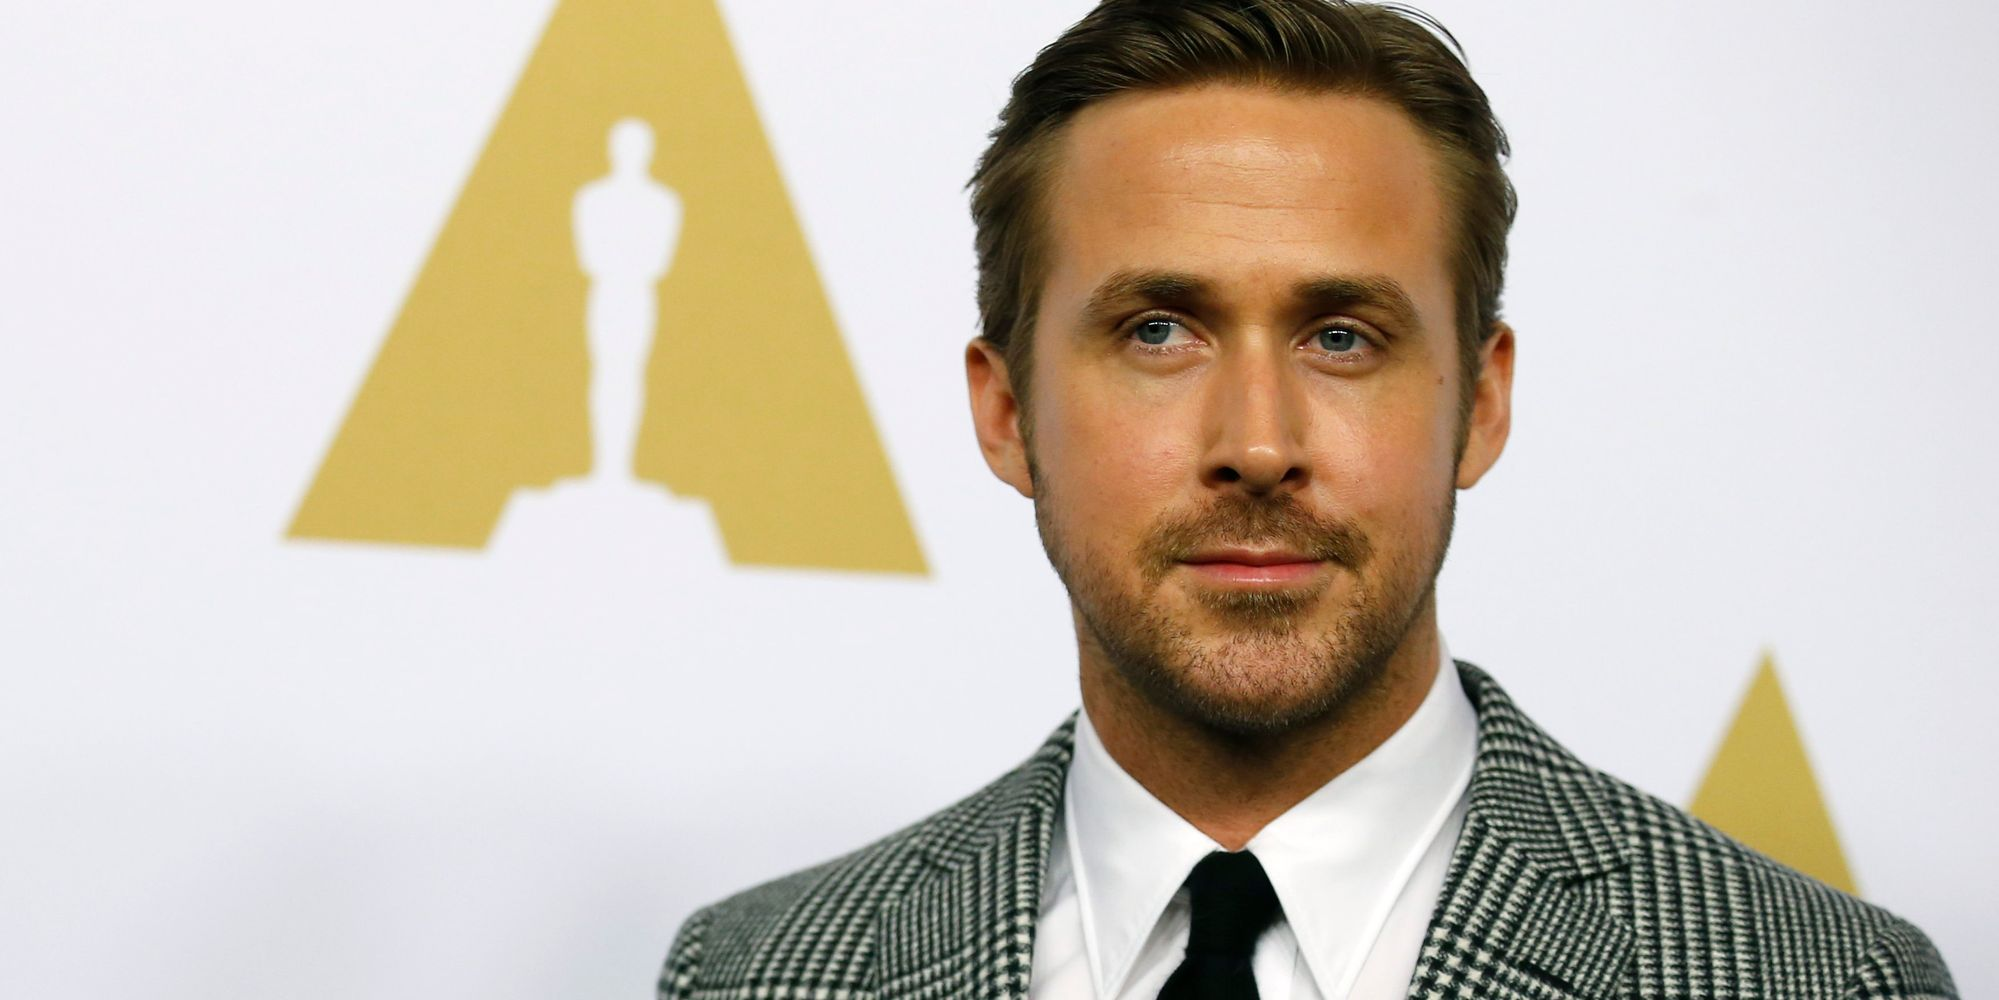 Ryan Gosling Tipped To Play A Young Willy Wonka In New Prequel Film